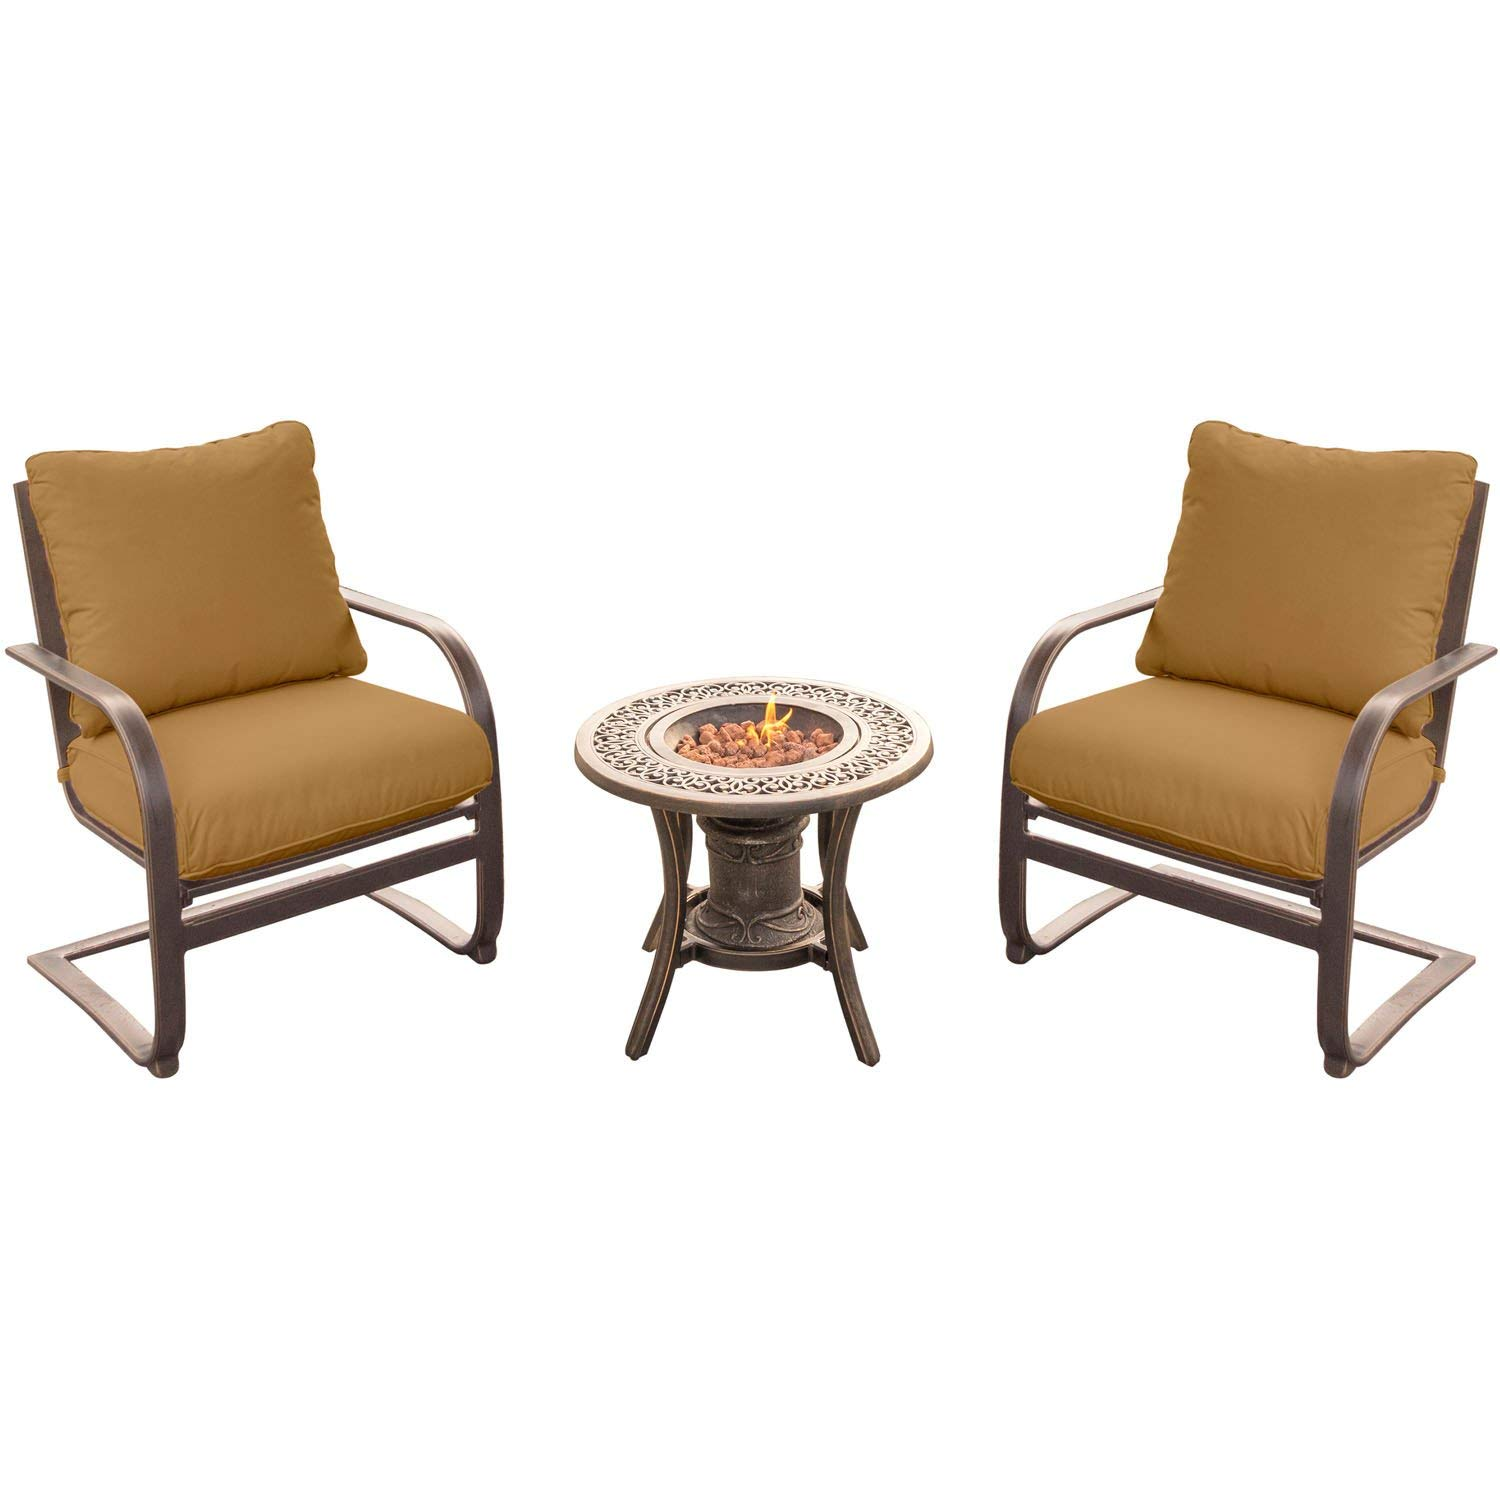 Hanover SUMRNGT3PCSP-URN Summer Nights Fire Pit Chat Set with Two C-Spring Chairs and A 10,000 BTU Fire Pit Side Table (3 Piece) (Pack of 3), Tan